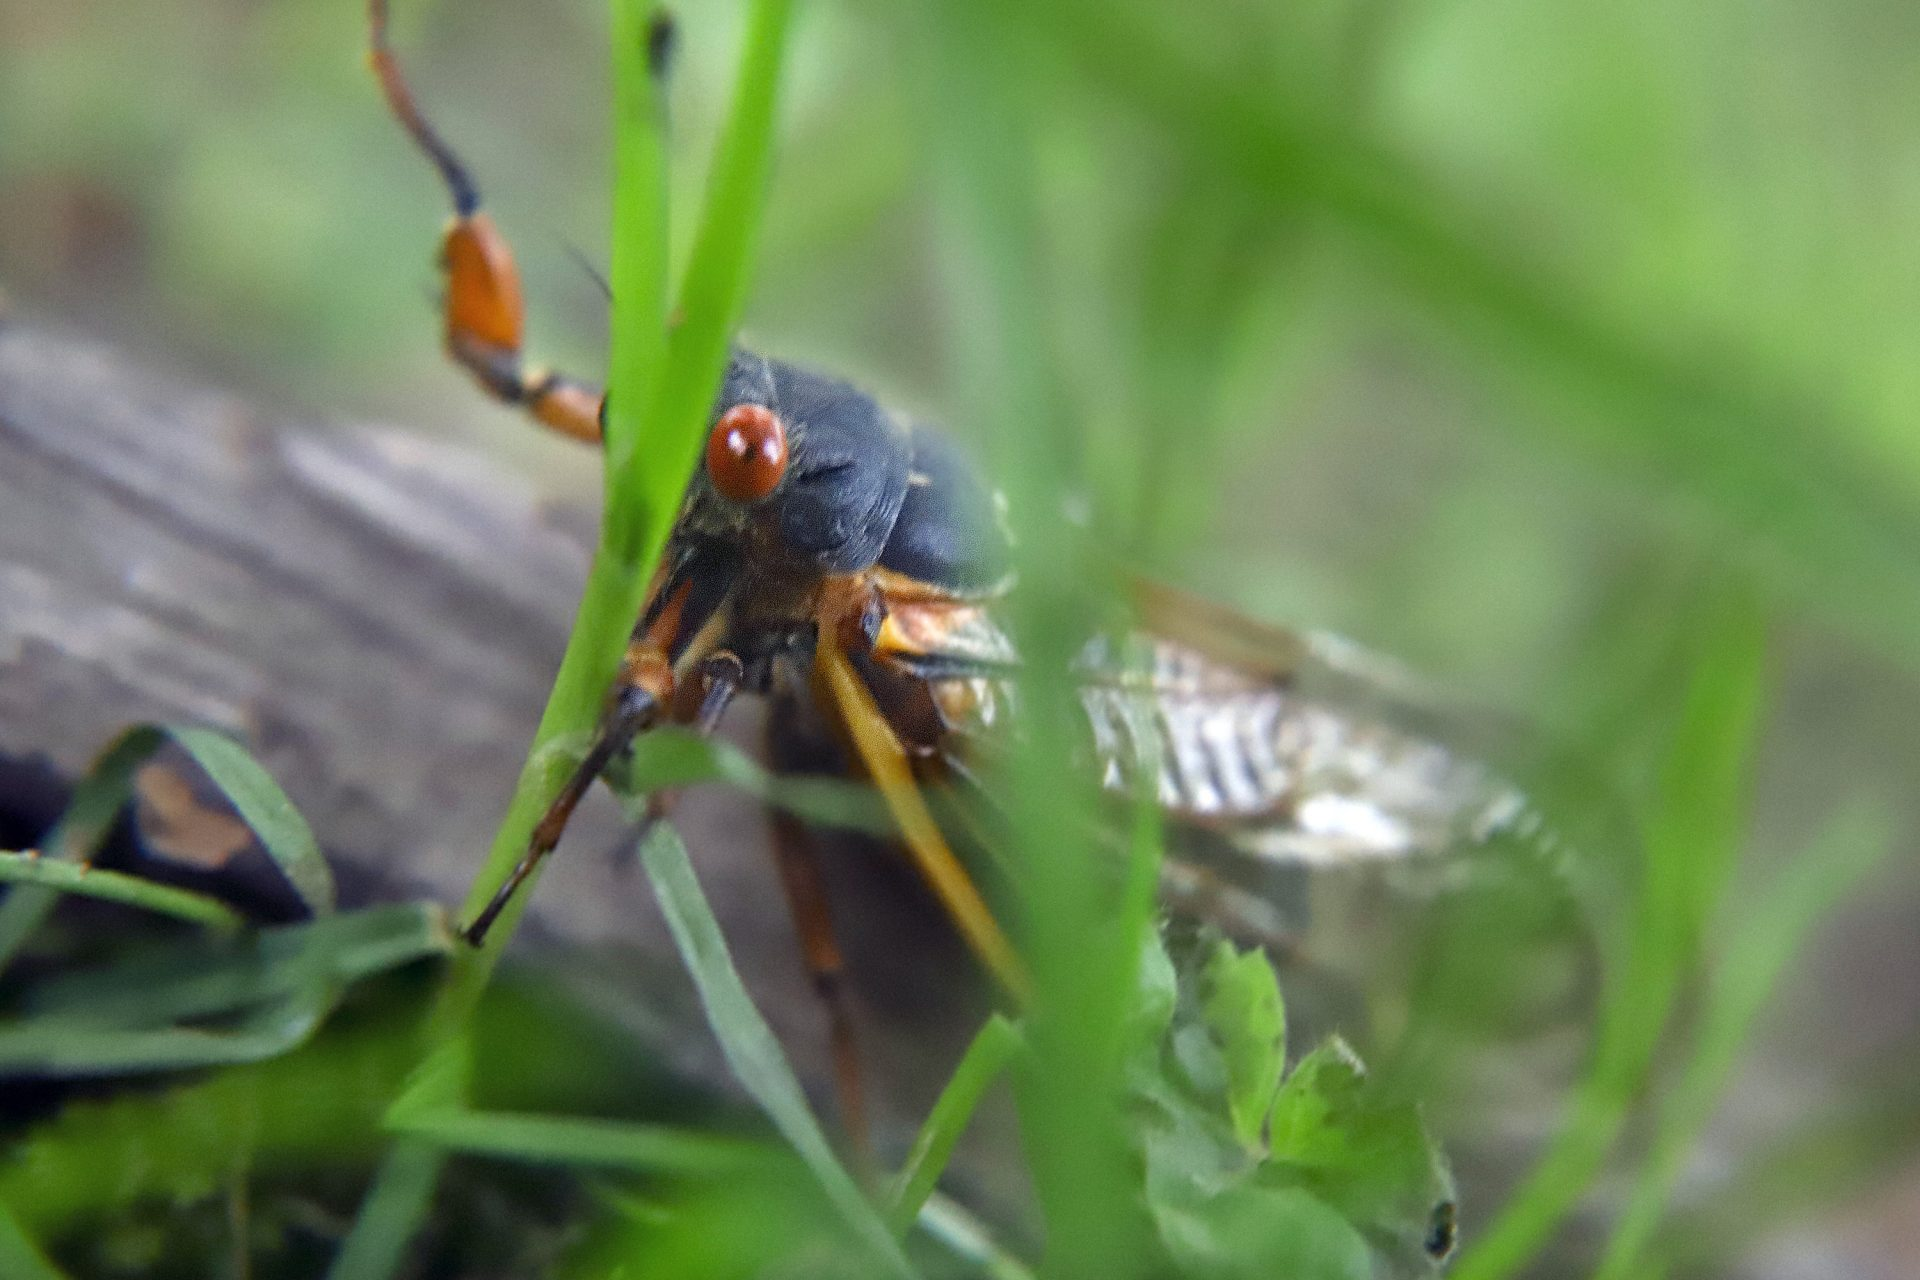 One of the millions of periodical cicadas in the area crawls through grass on Saturday, June 1, 2019 after it emerged from a 17-year hibernation in Zelienople, Pa.